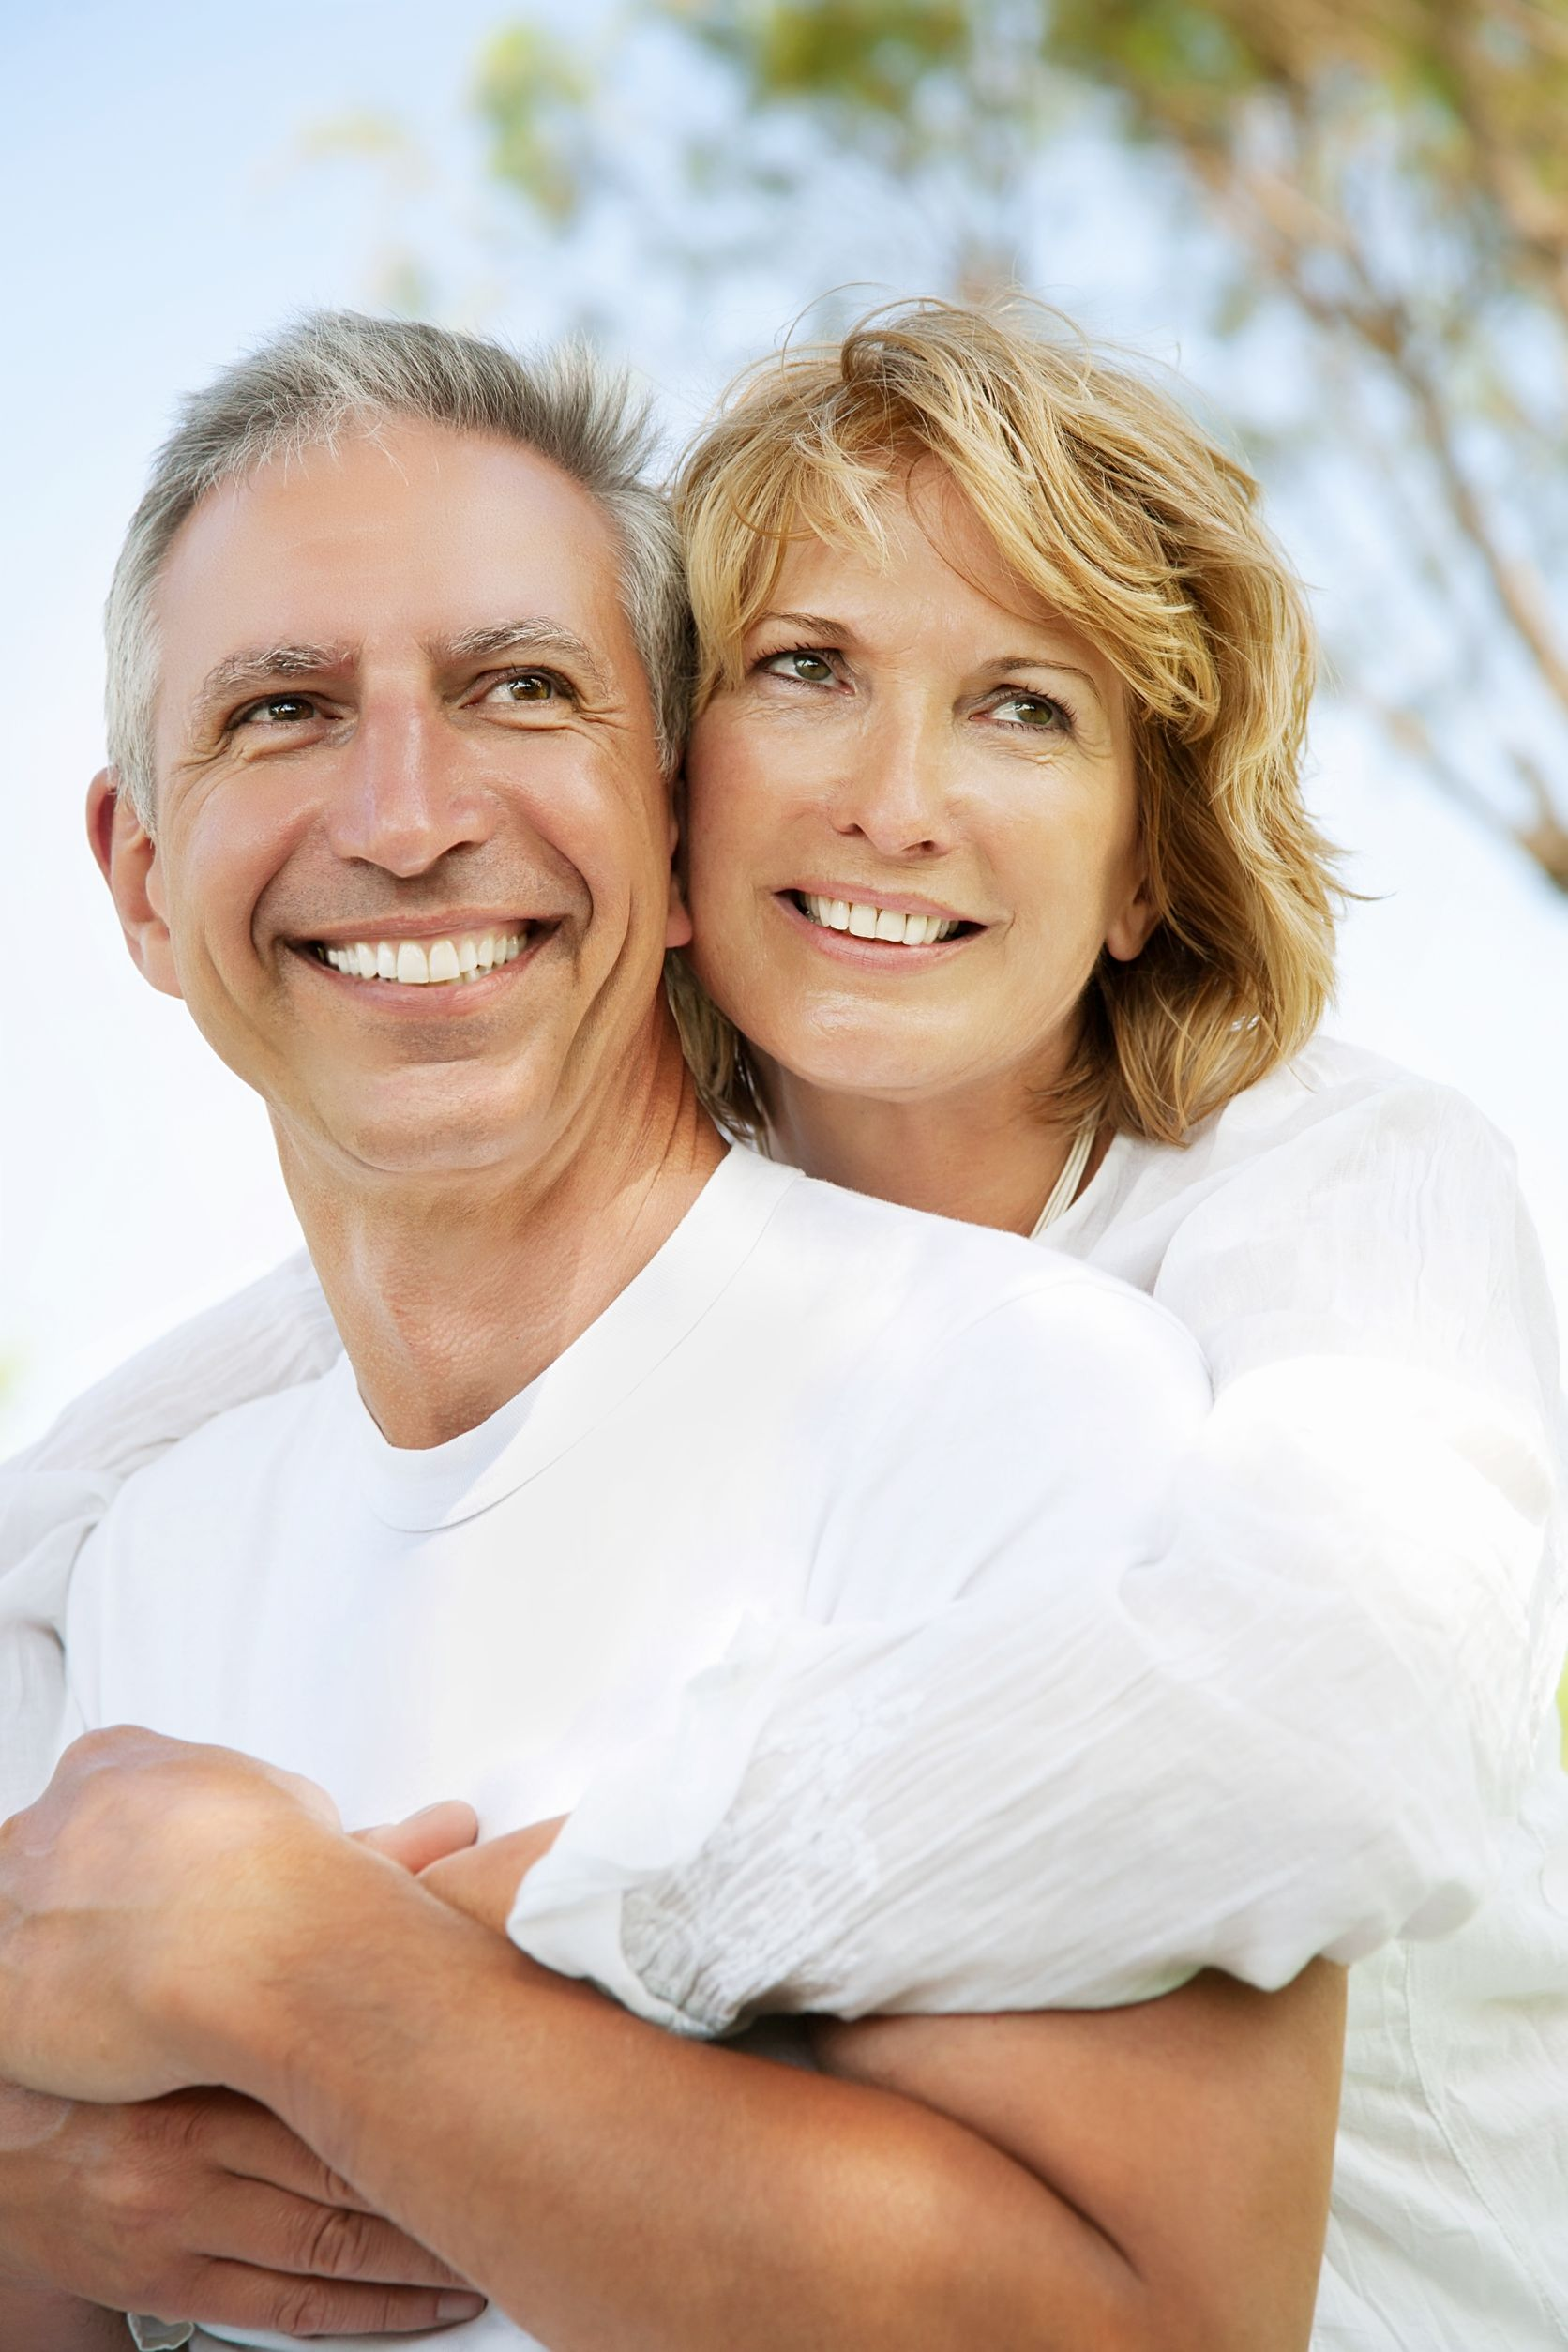 Can I Get Dentures From The Johns Creek Best Dentist?